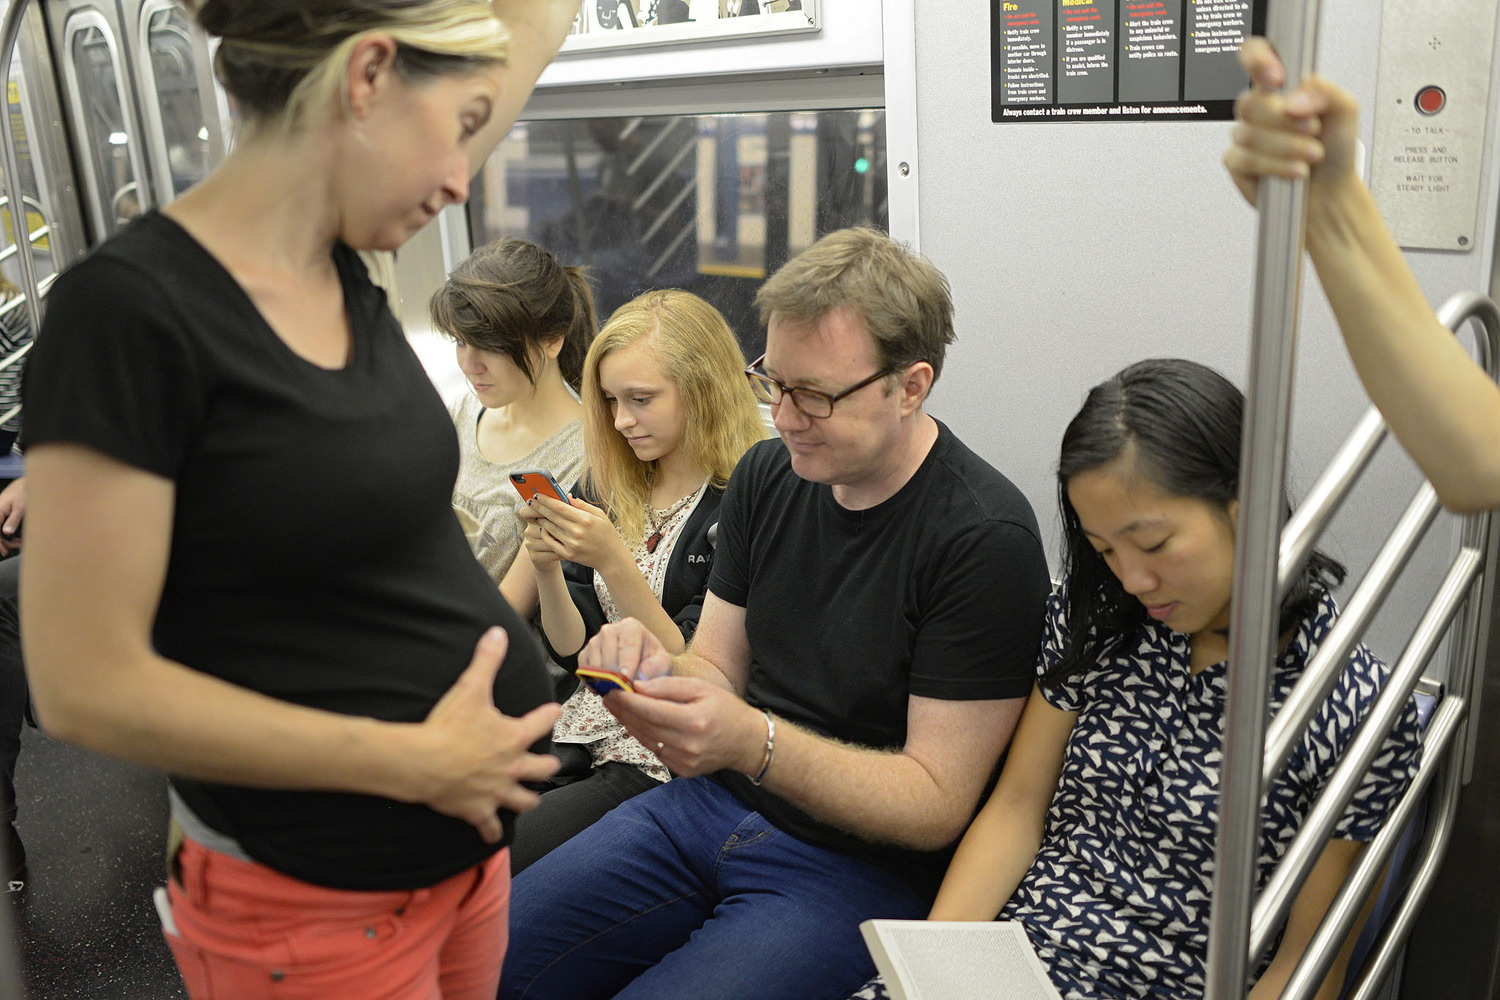 "Pregnant Woman Stands on Subway While People Sit and Play with Phones | You can use this photo for non-commercial purposes if you give credit, under this <a href=""https://creativecommons.org/licenses/by-nc/3.0/us/"" rel=""nofollow"">Creative Commons license</a>. For-profit media organizations also may use this, but as editorial content only (as illustrations for stories, for example, but not as advertising). Credit must read: Richard Yeh / WNYC  We'd love to know if you're using this photo - send us an email (jkeefe@wnyc.org)!"